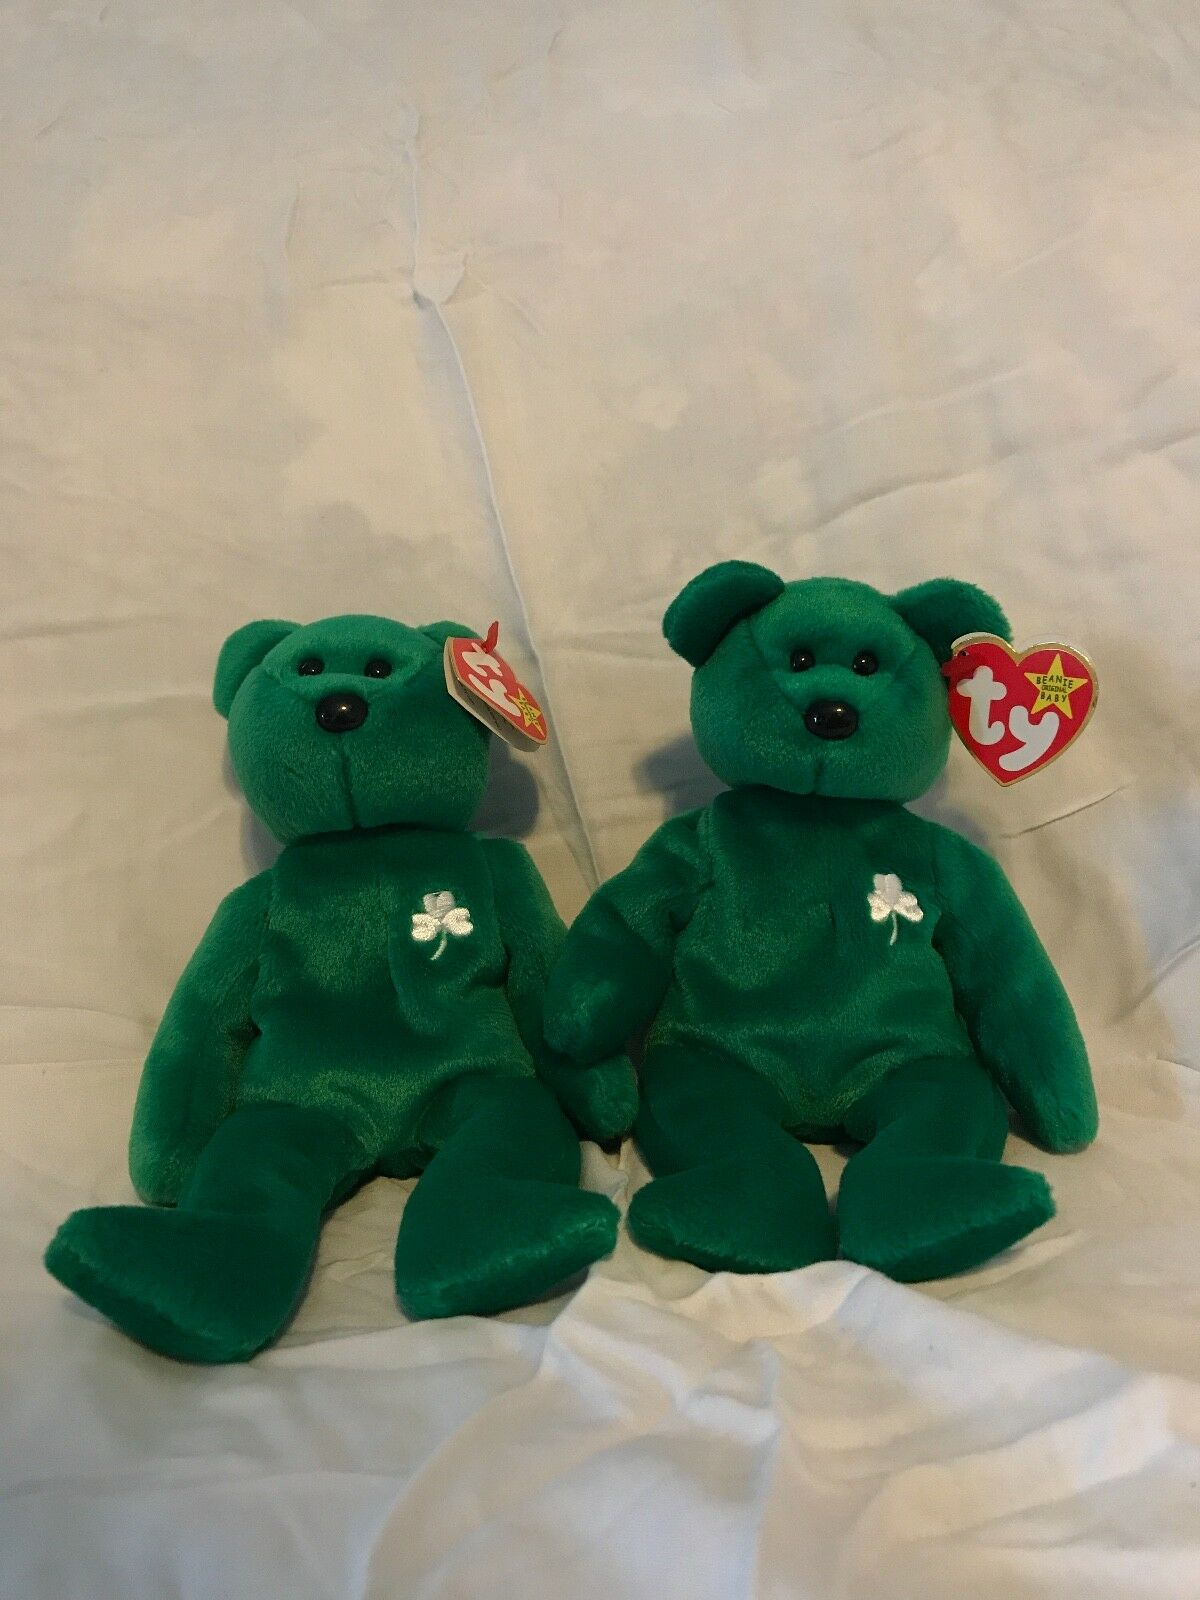 58a9c84925d TY Beanie Baby (Erin) the Bear BUNDLE 2 1 1997 for nppfyj9448 ...